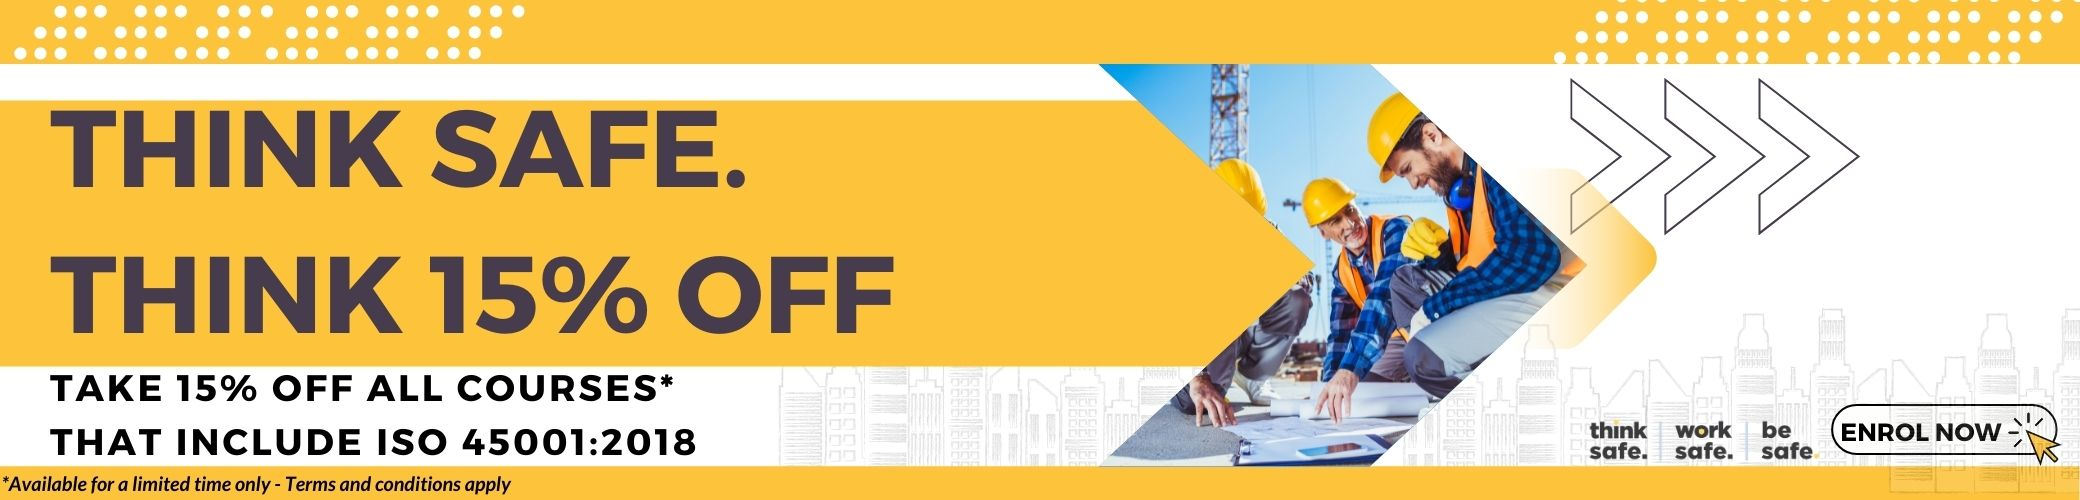 Safe work month 2021 15% OFF ISO 45001 courses